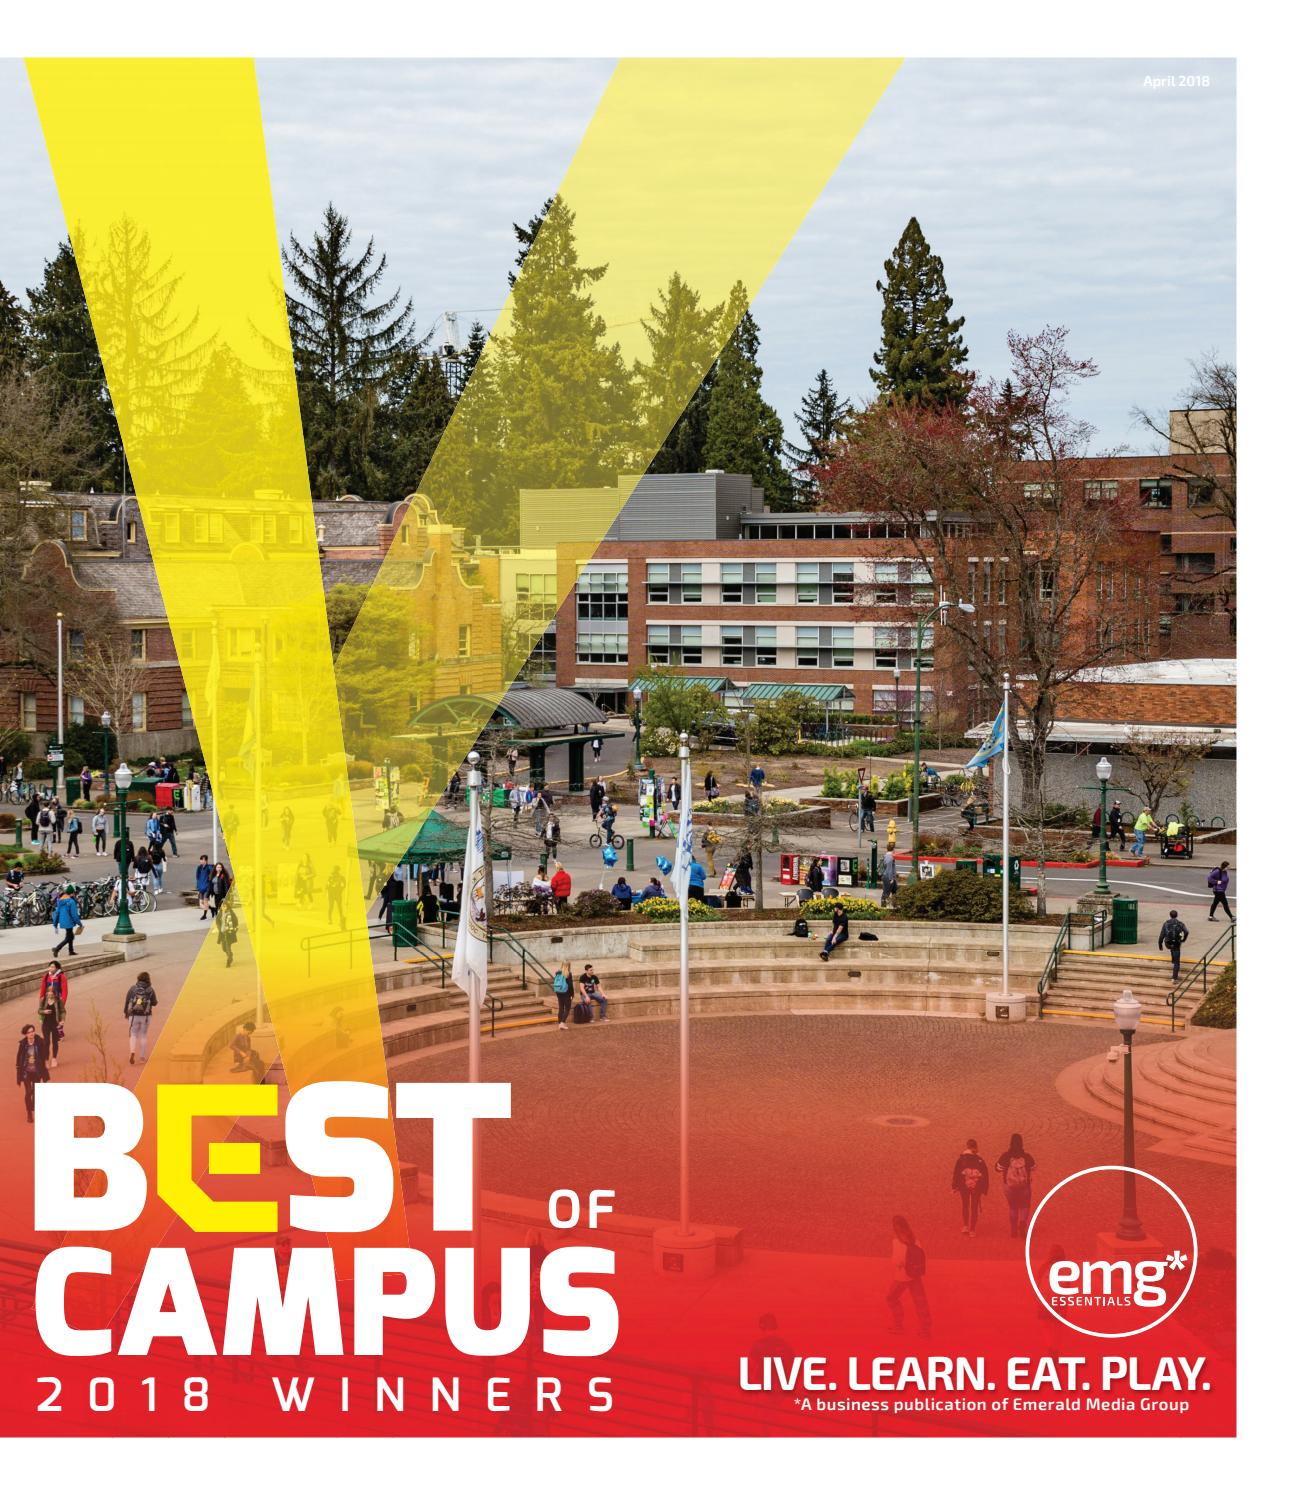 Best of Campus - Results Guide 2018 by Emerald Media Group